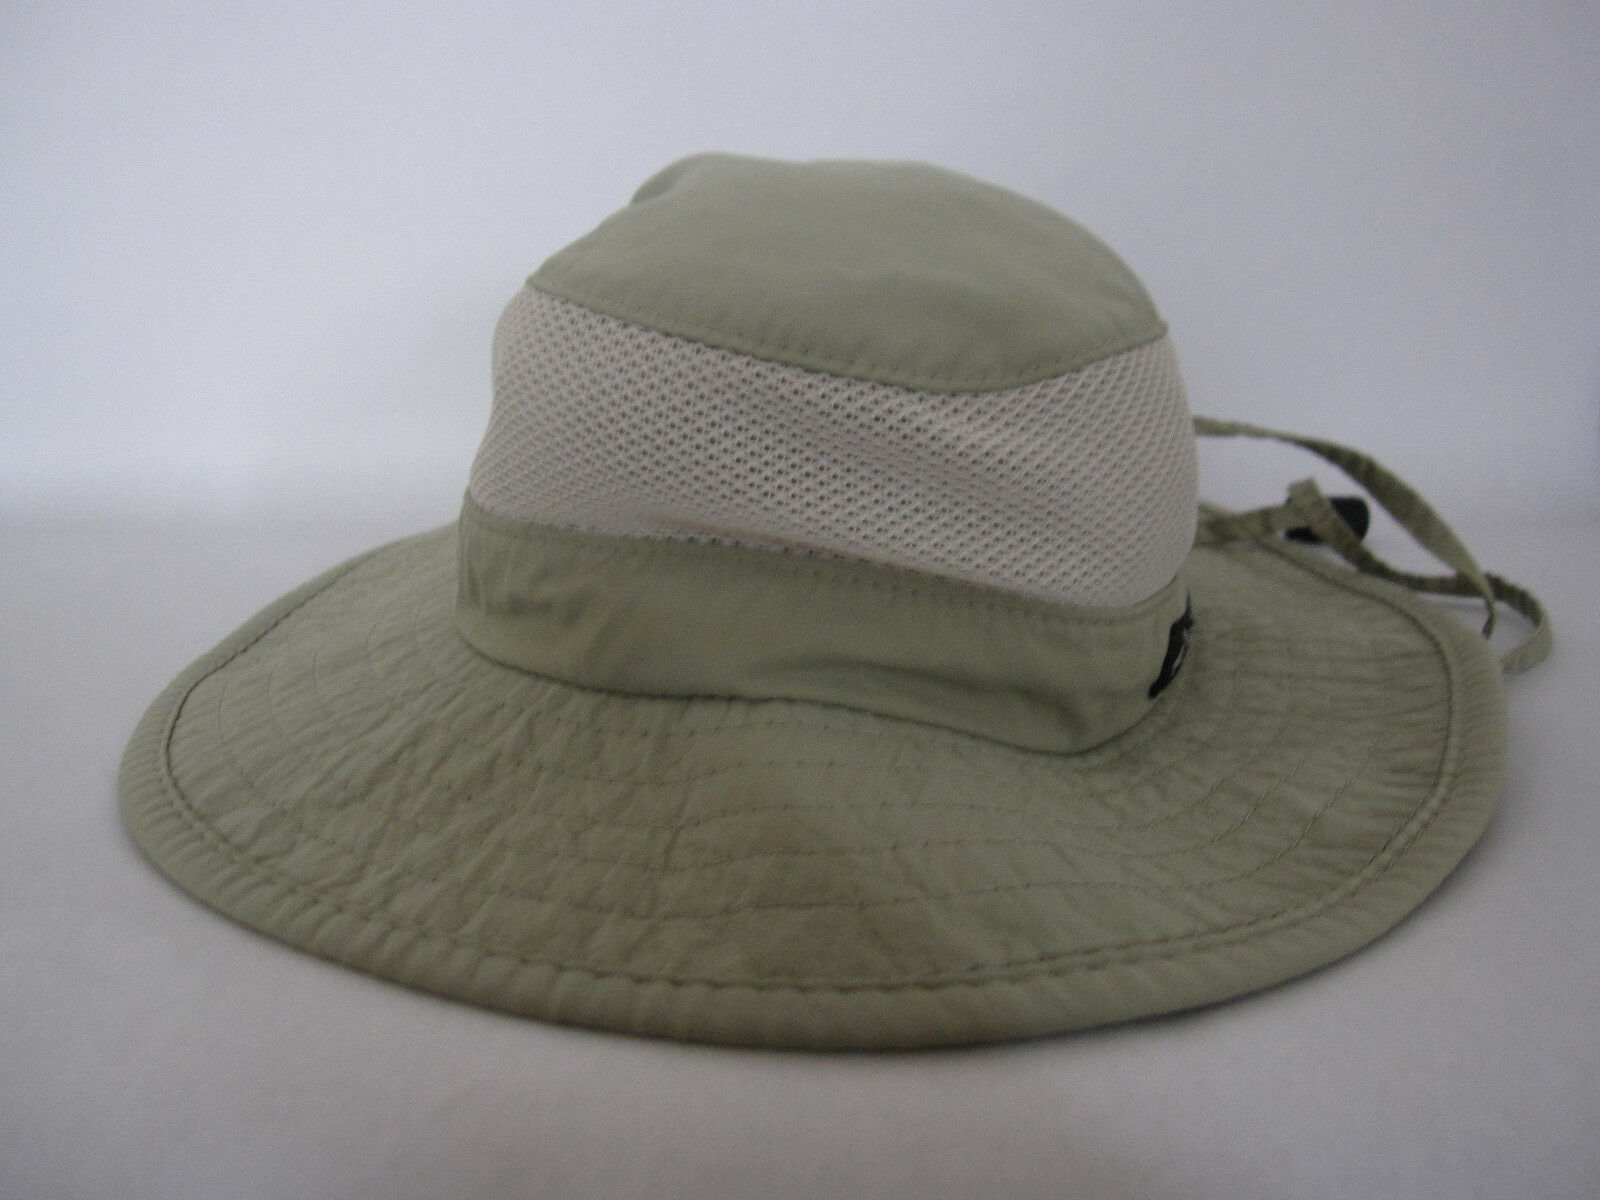 Dorfman Pacific Co DPC Fishing/Outdoor/Camping Vented Nylon Bucket Hat Sz S